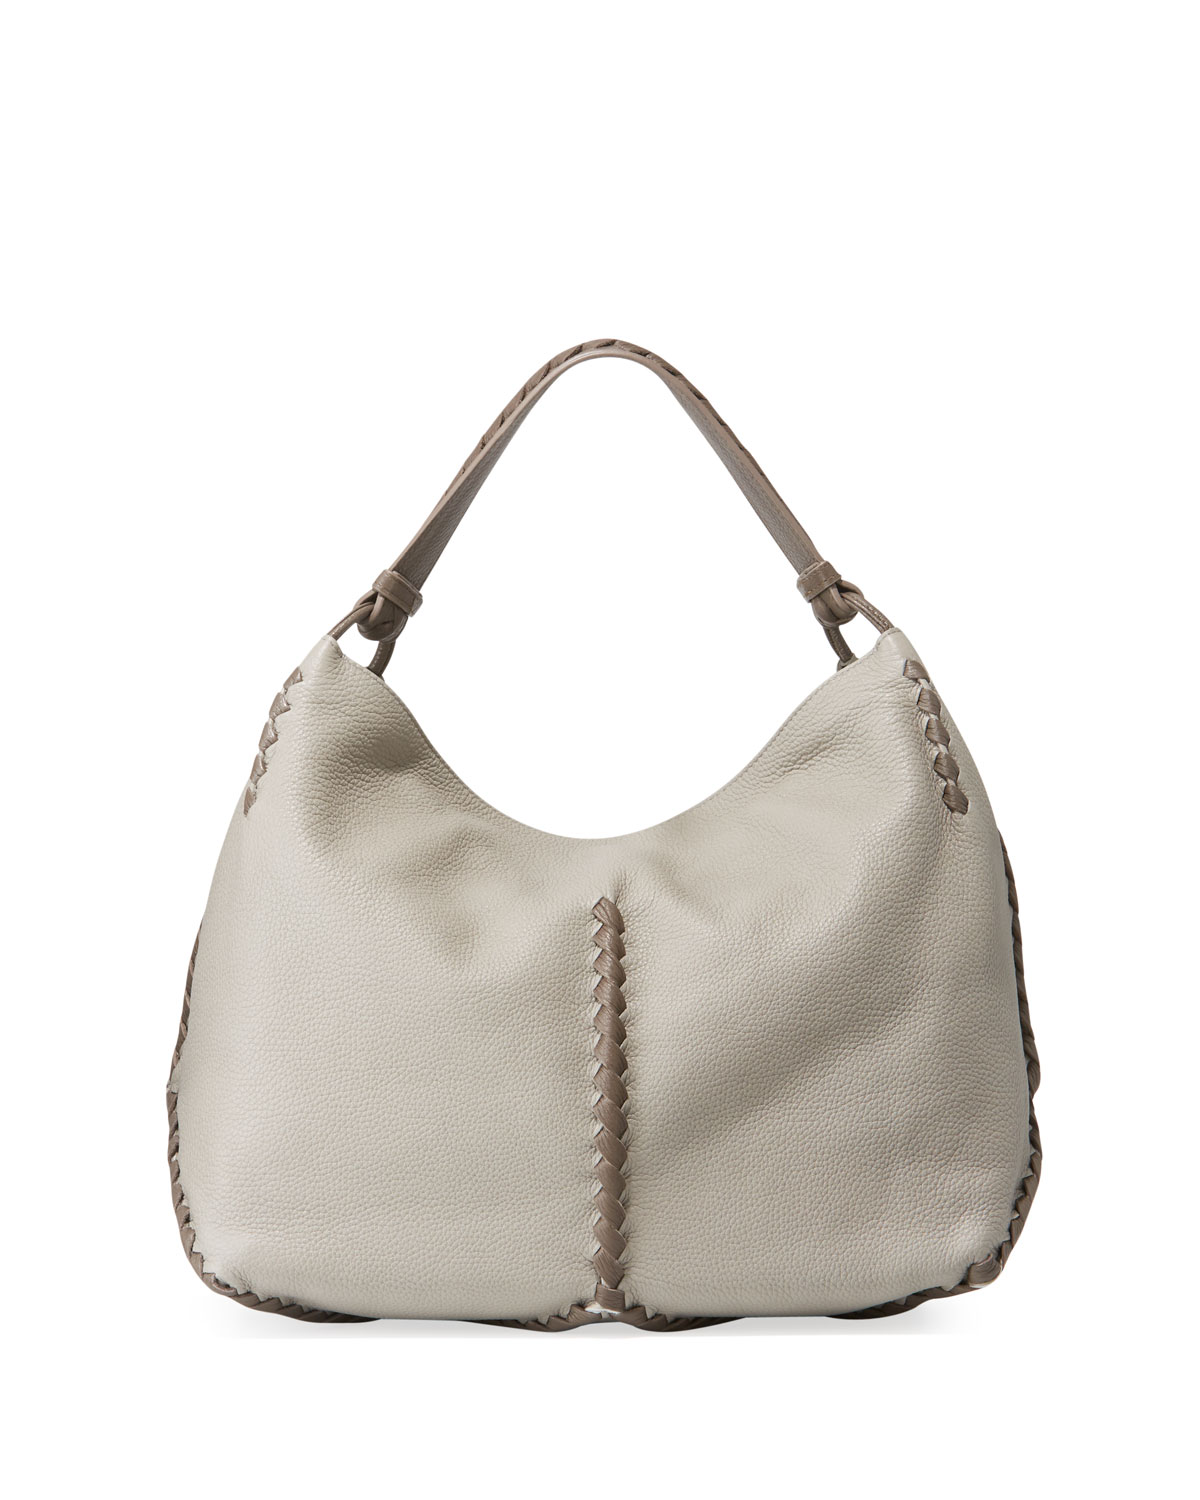 4f82effbab Bottega Veneta Leather Cervo Hobo Bag